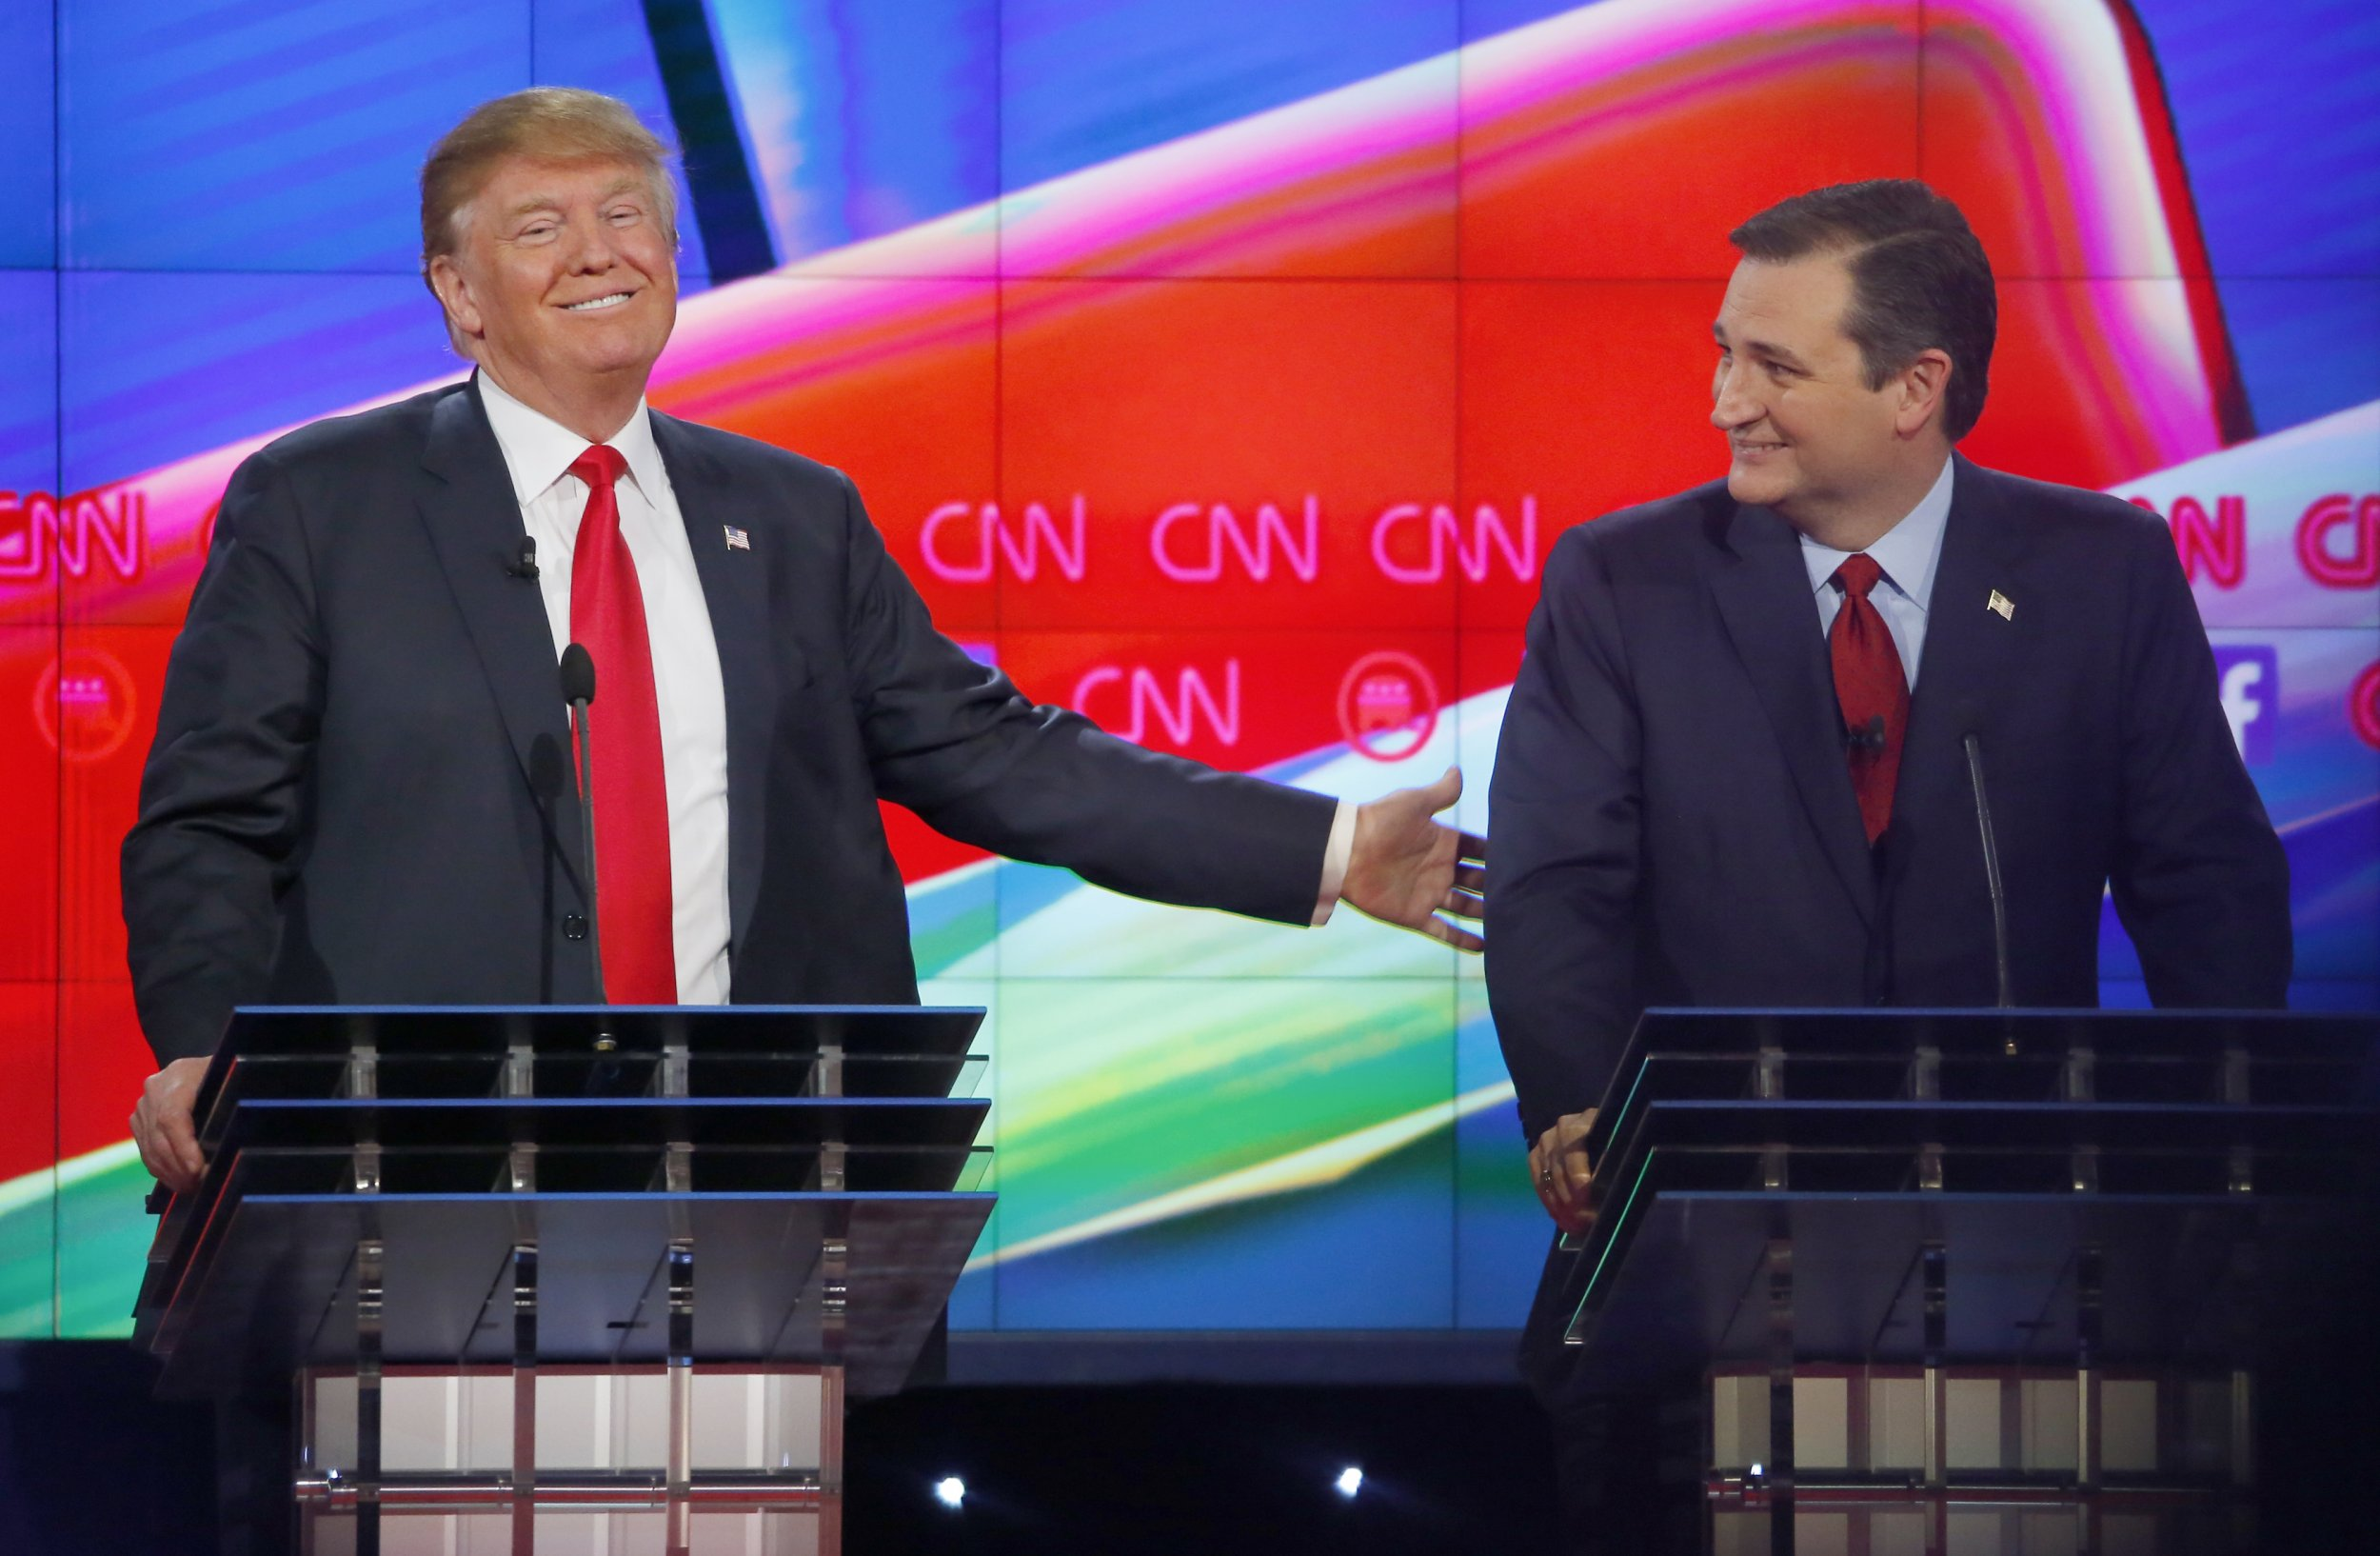 Donald Trump and Ted Cruz